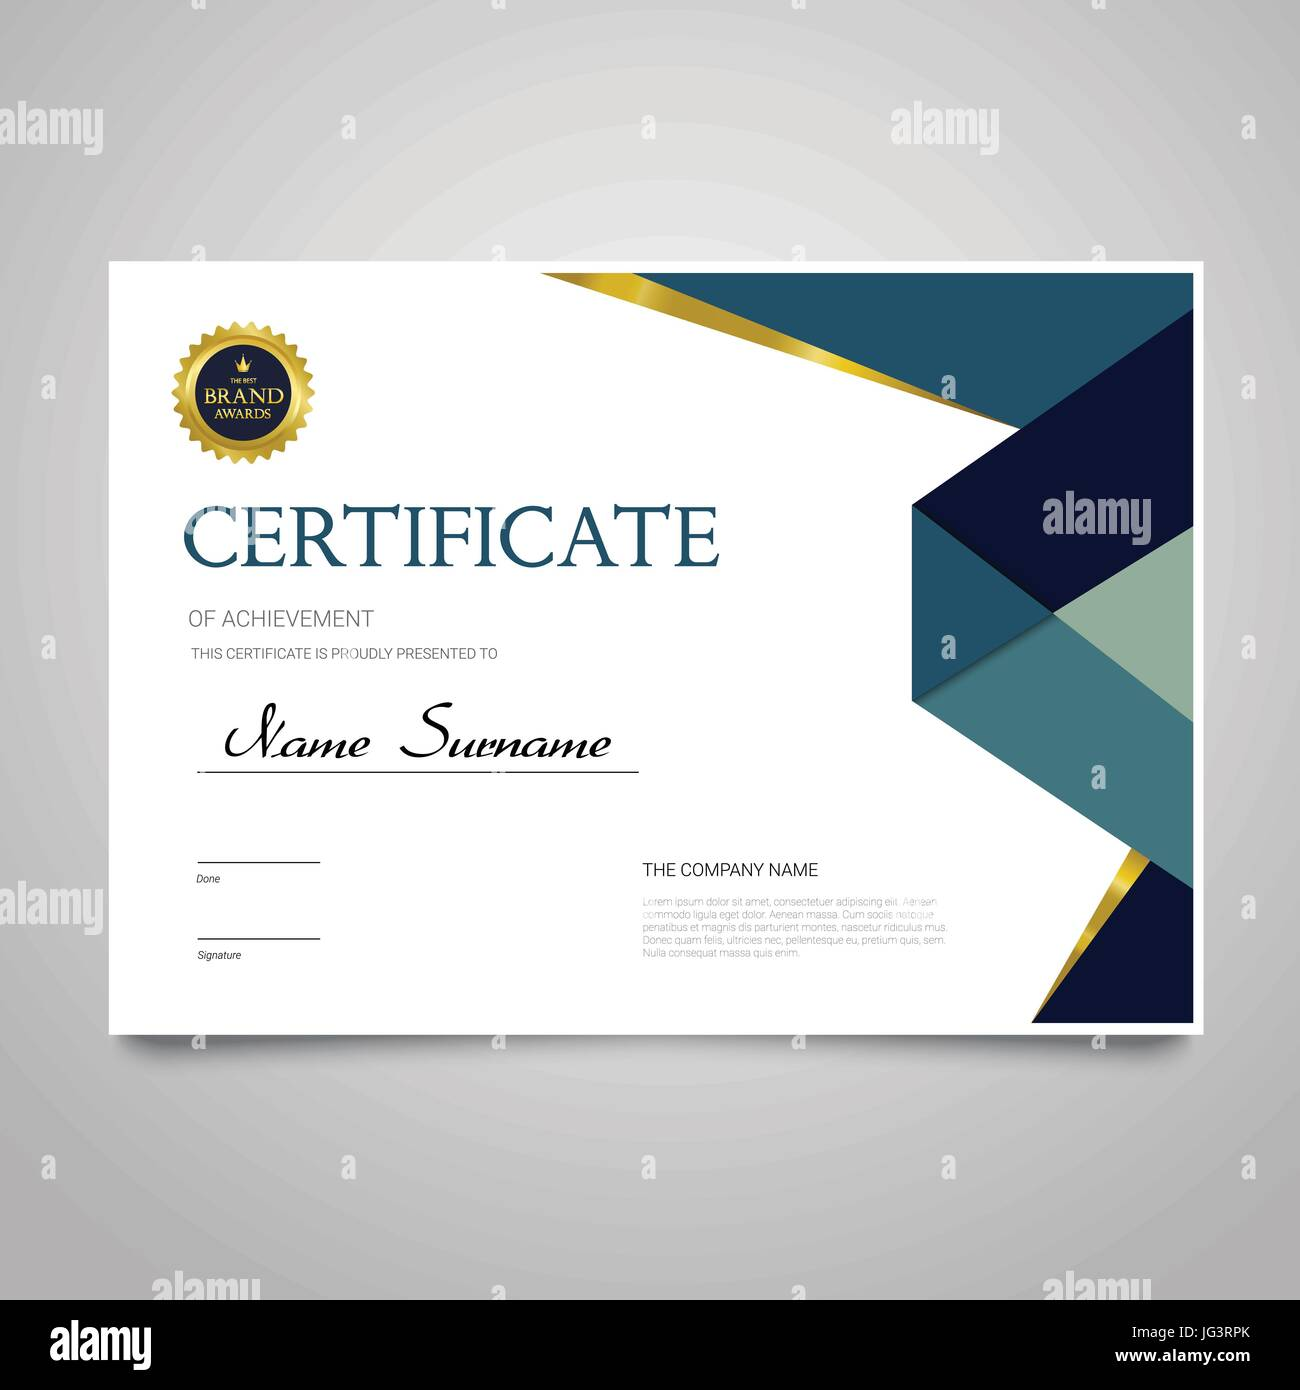 Certificate Template Modern Horizontal Elegant Vector Document